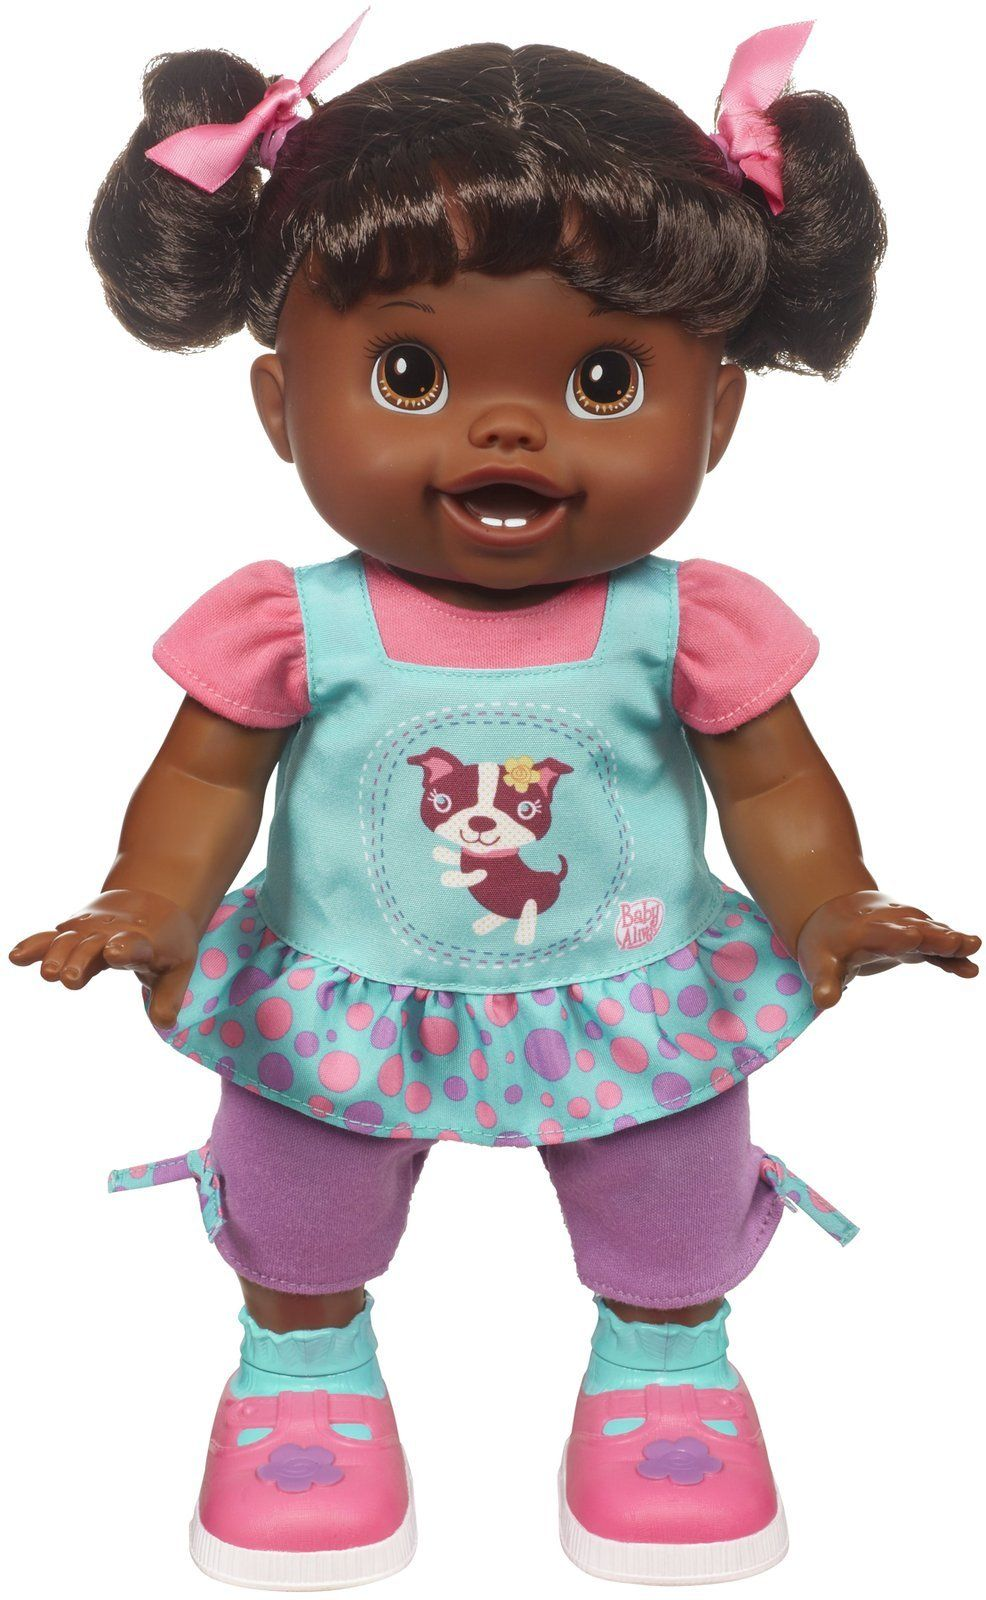 Baby Alive Baby Wanna Walk African American Baby Alive Dolls Baby Alive African American Dolls